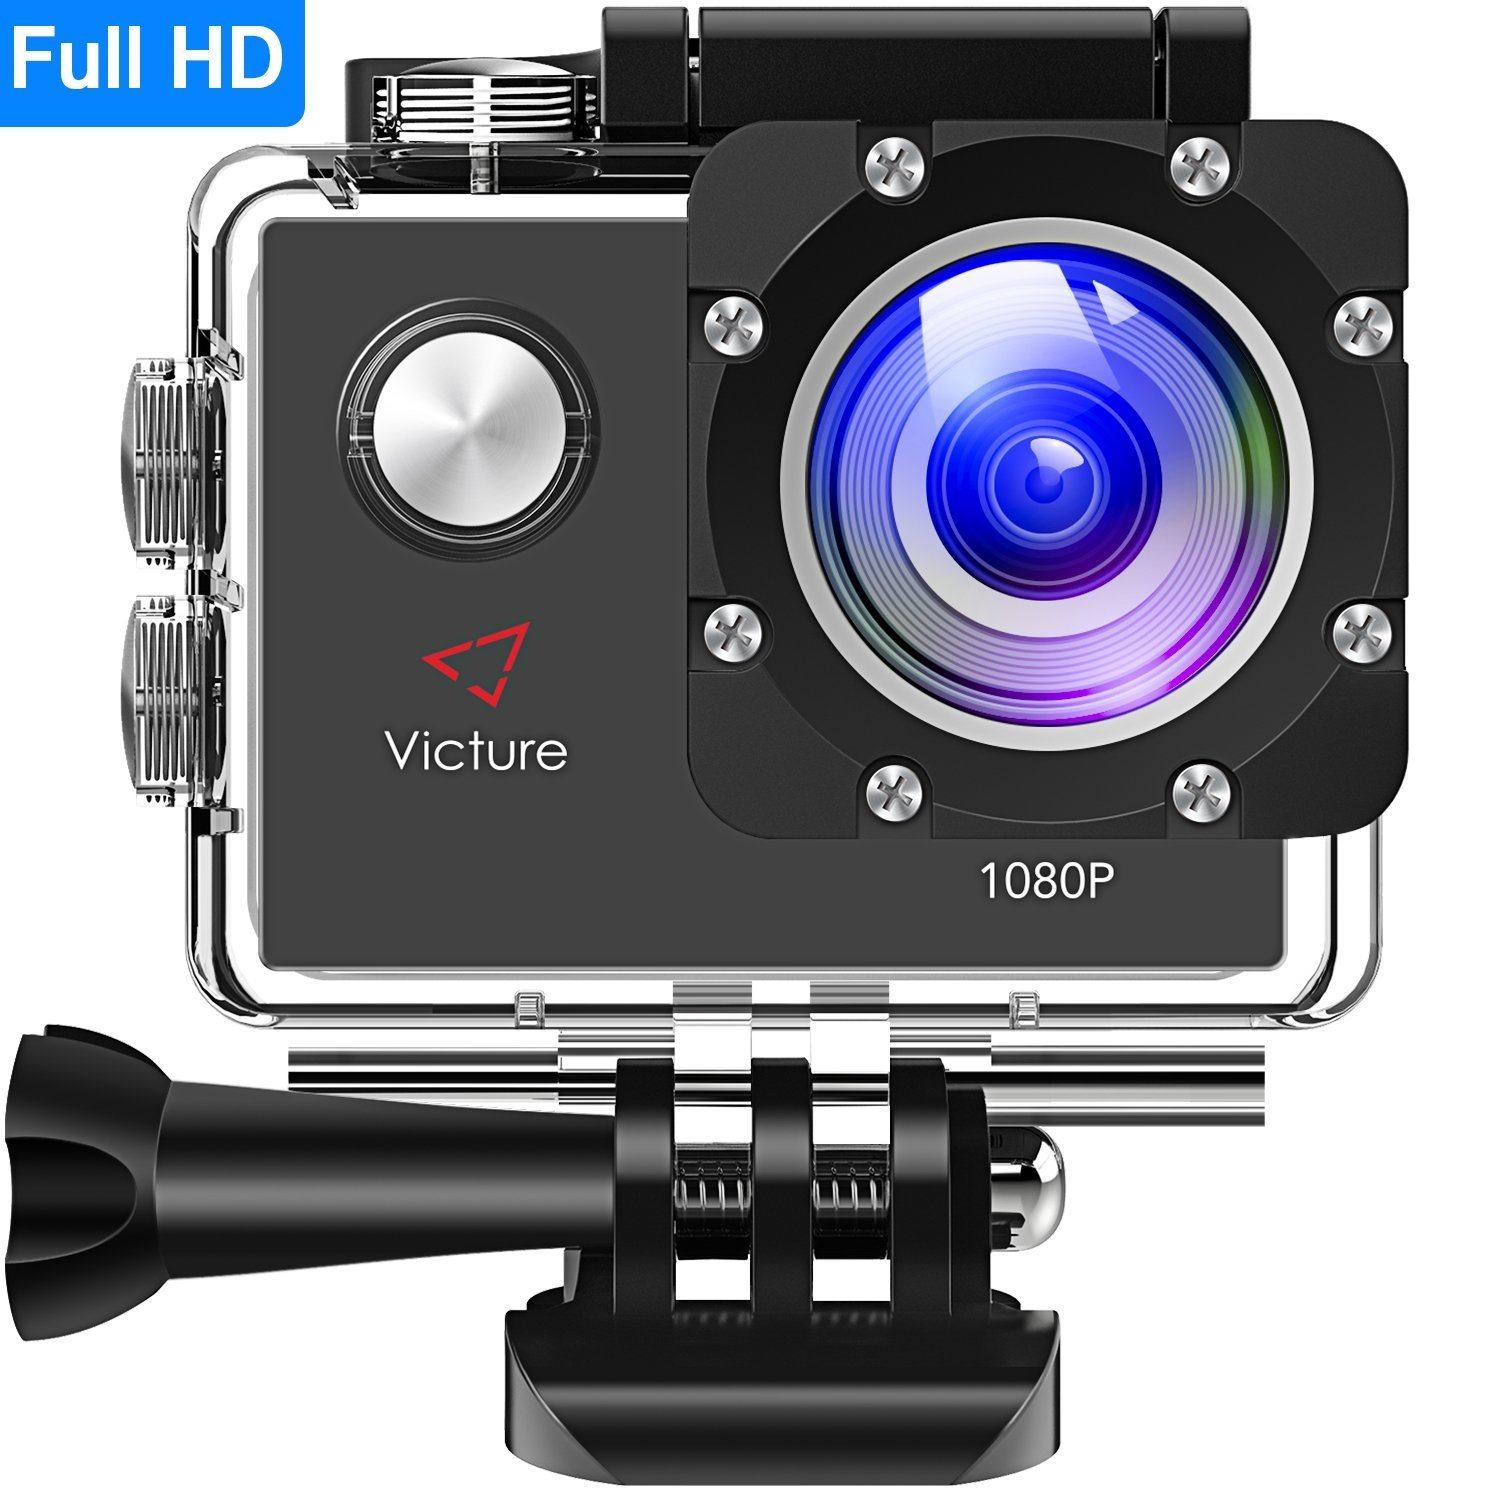 Victure Actioncam Full HD 1080P 12MP 170° Wide Angle Waterproof Action  Cameras Underwater Sports Action Camera with 1050 mAh Battery 20 + Free